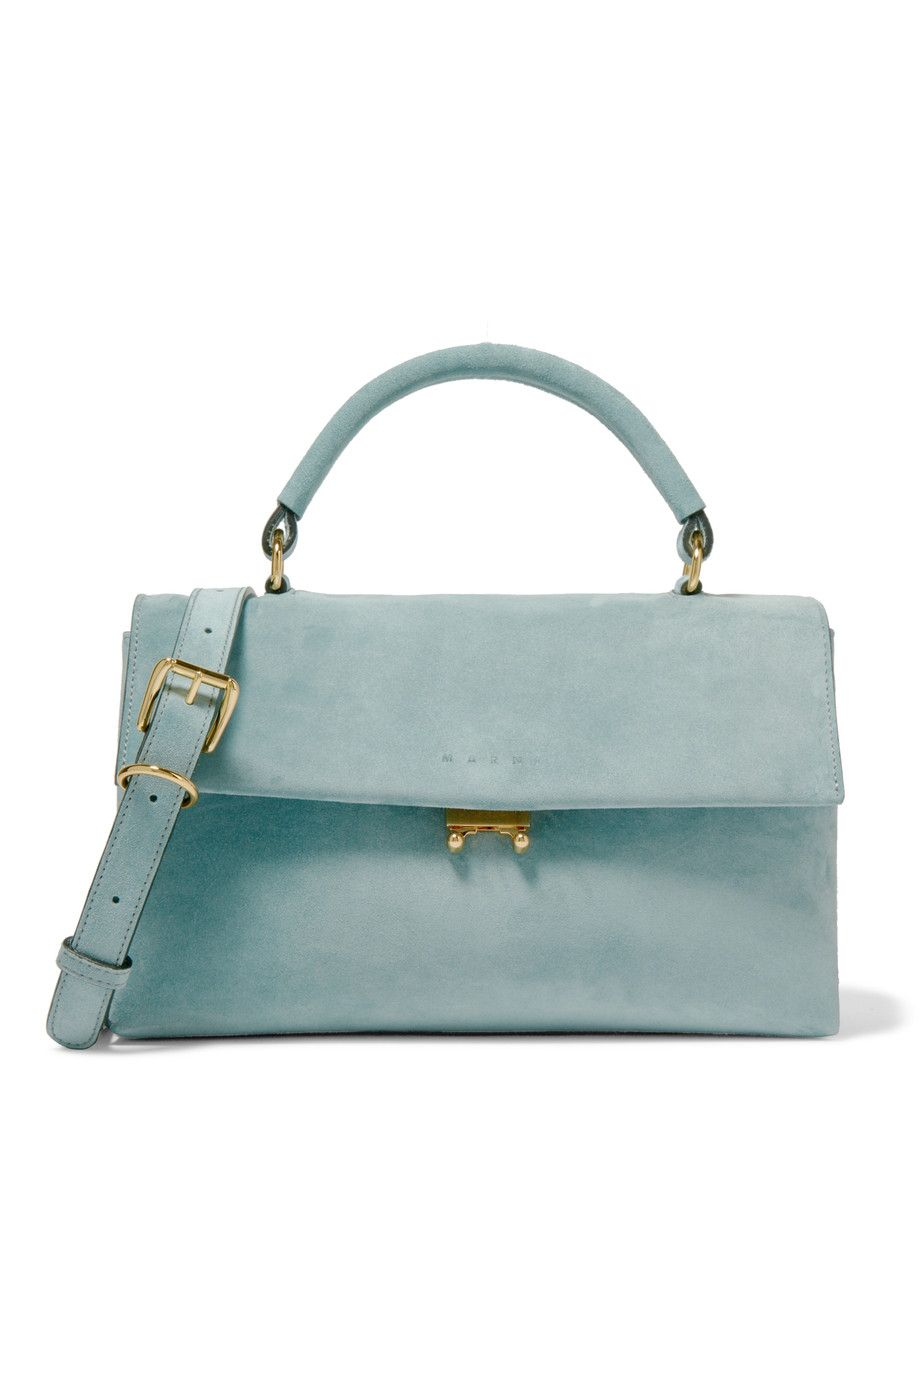 912615550e17 Marni suede shoulder bag marni bags shoulder bags hand bags stone suede  lace jpg 920x1380 Marni